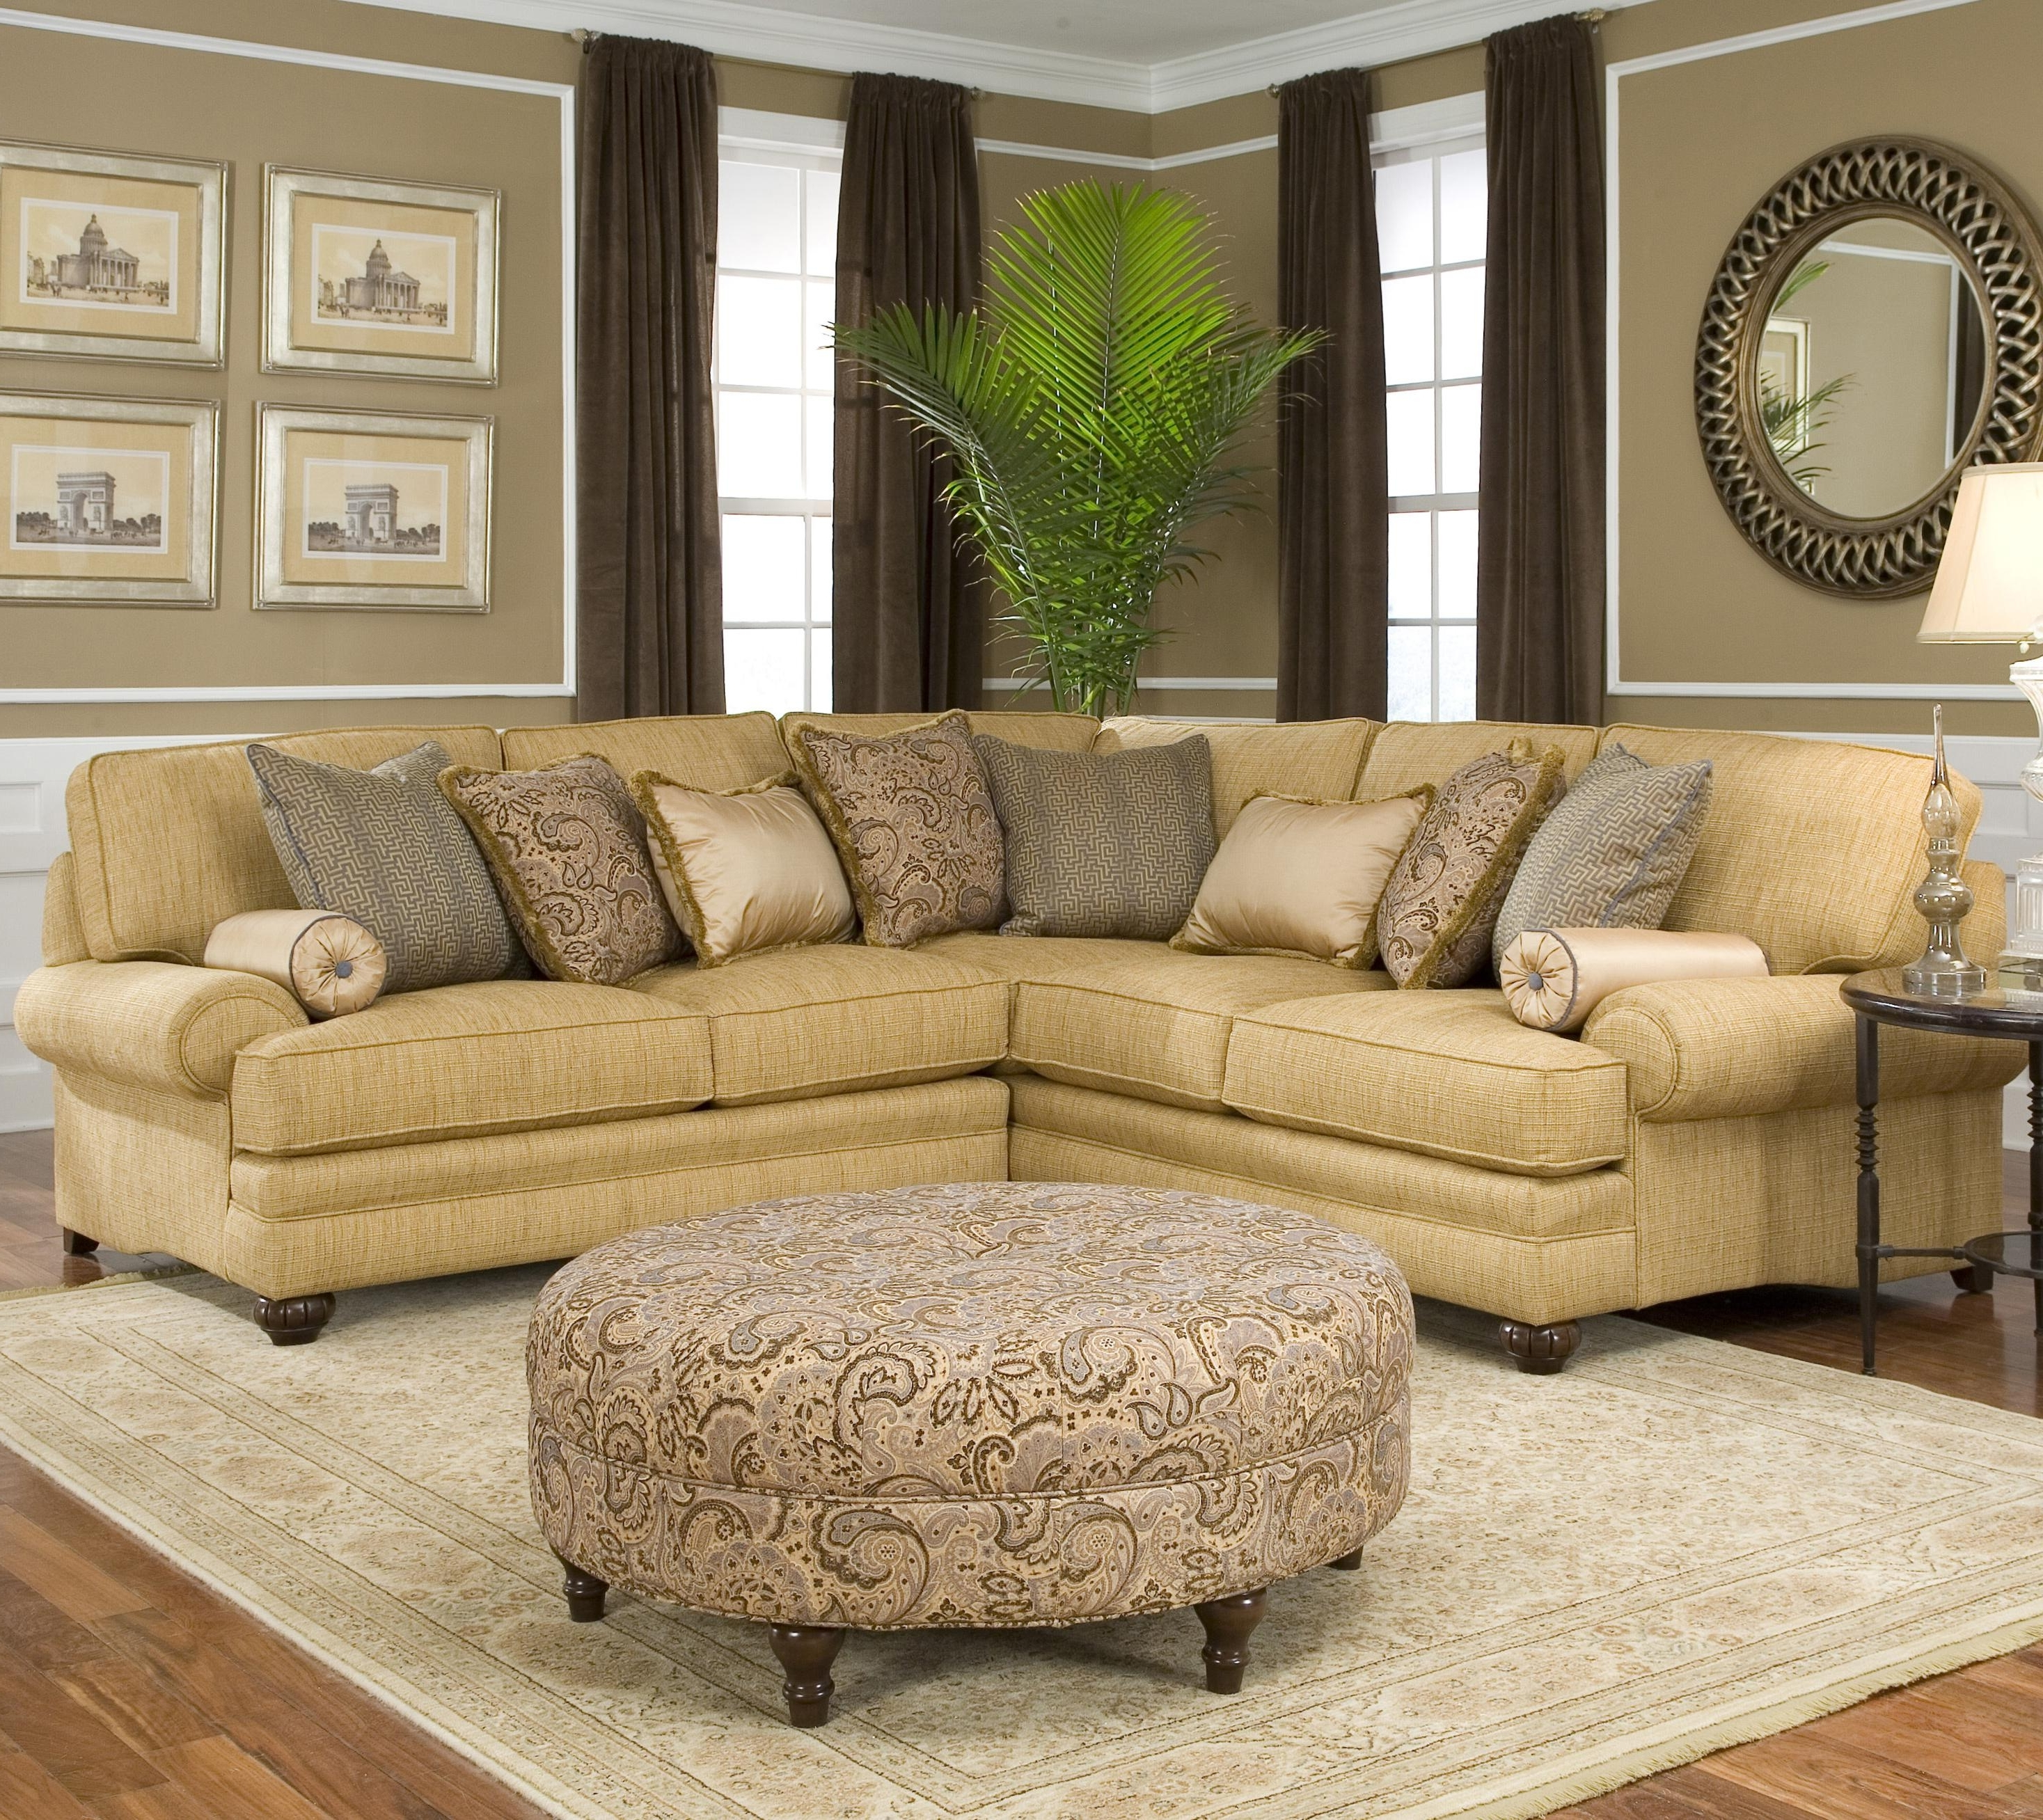 Smith Brothers 376 Traditional Styled Corner Sectional Sofa Throughout Most Popular Rounded Corner Sectional Sofas (View 12 of 15)